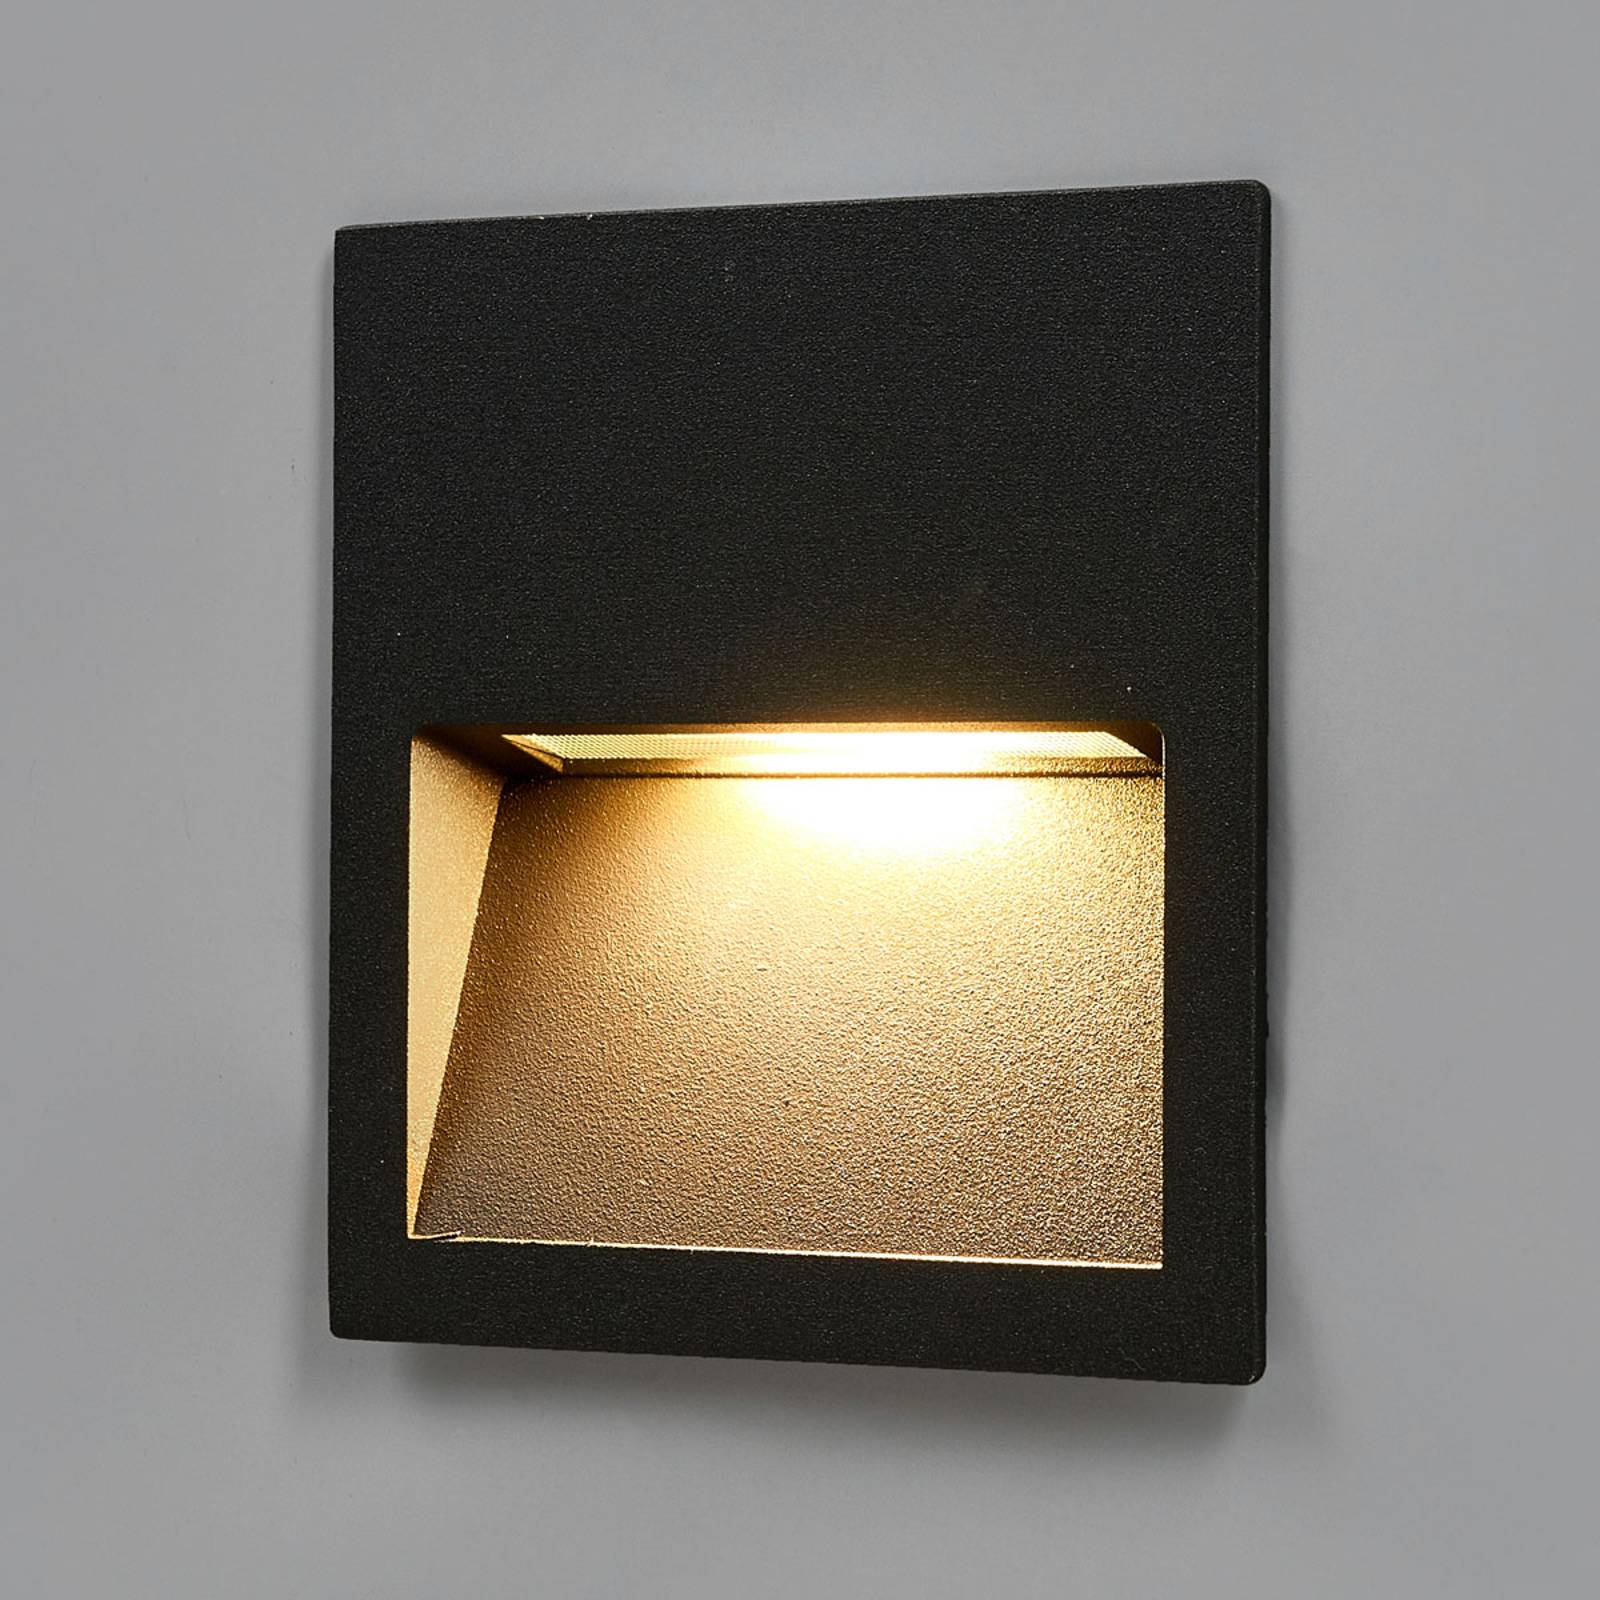 Square Loya LED recessed wall lamp for outdoors from Lucande